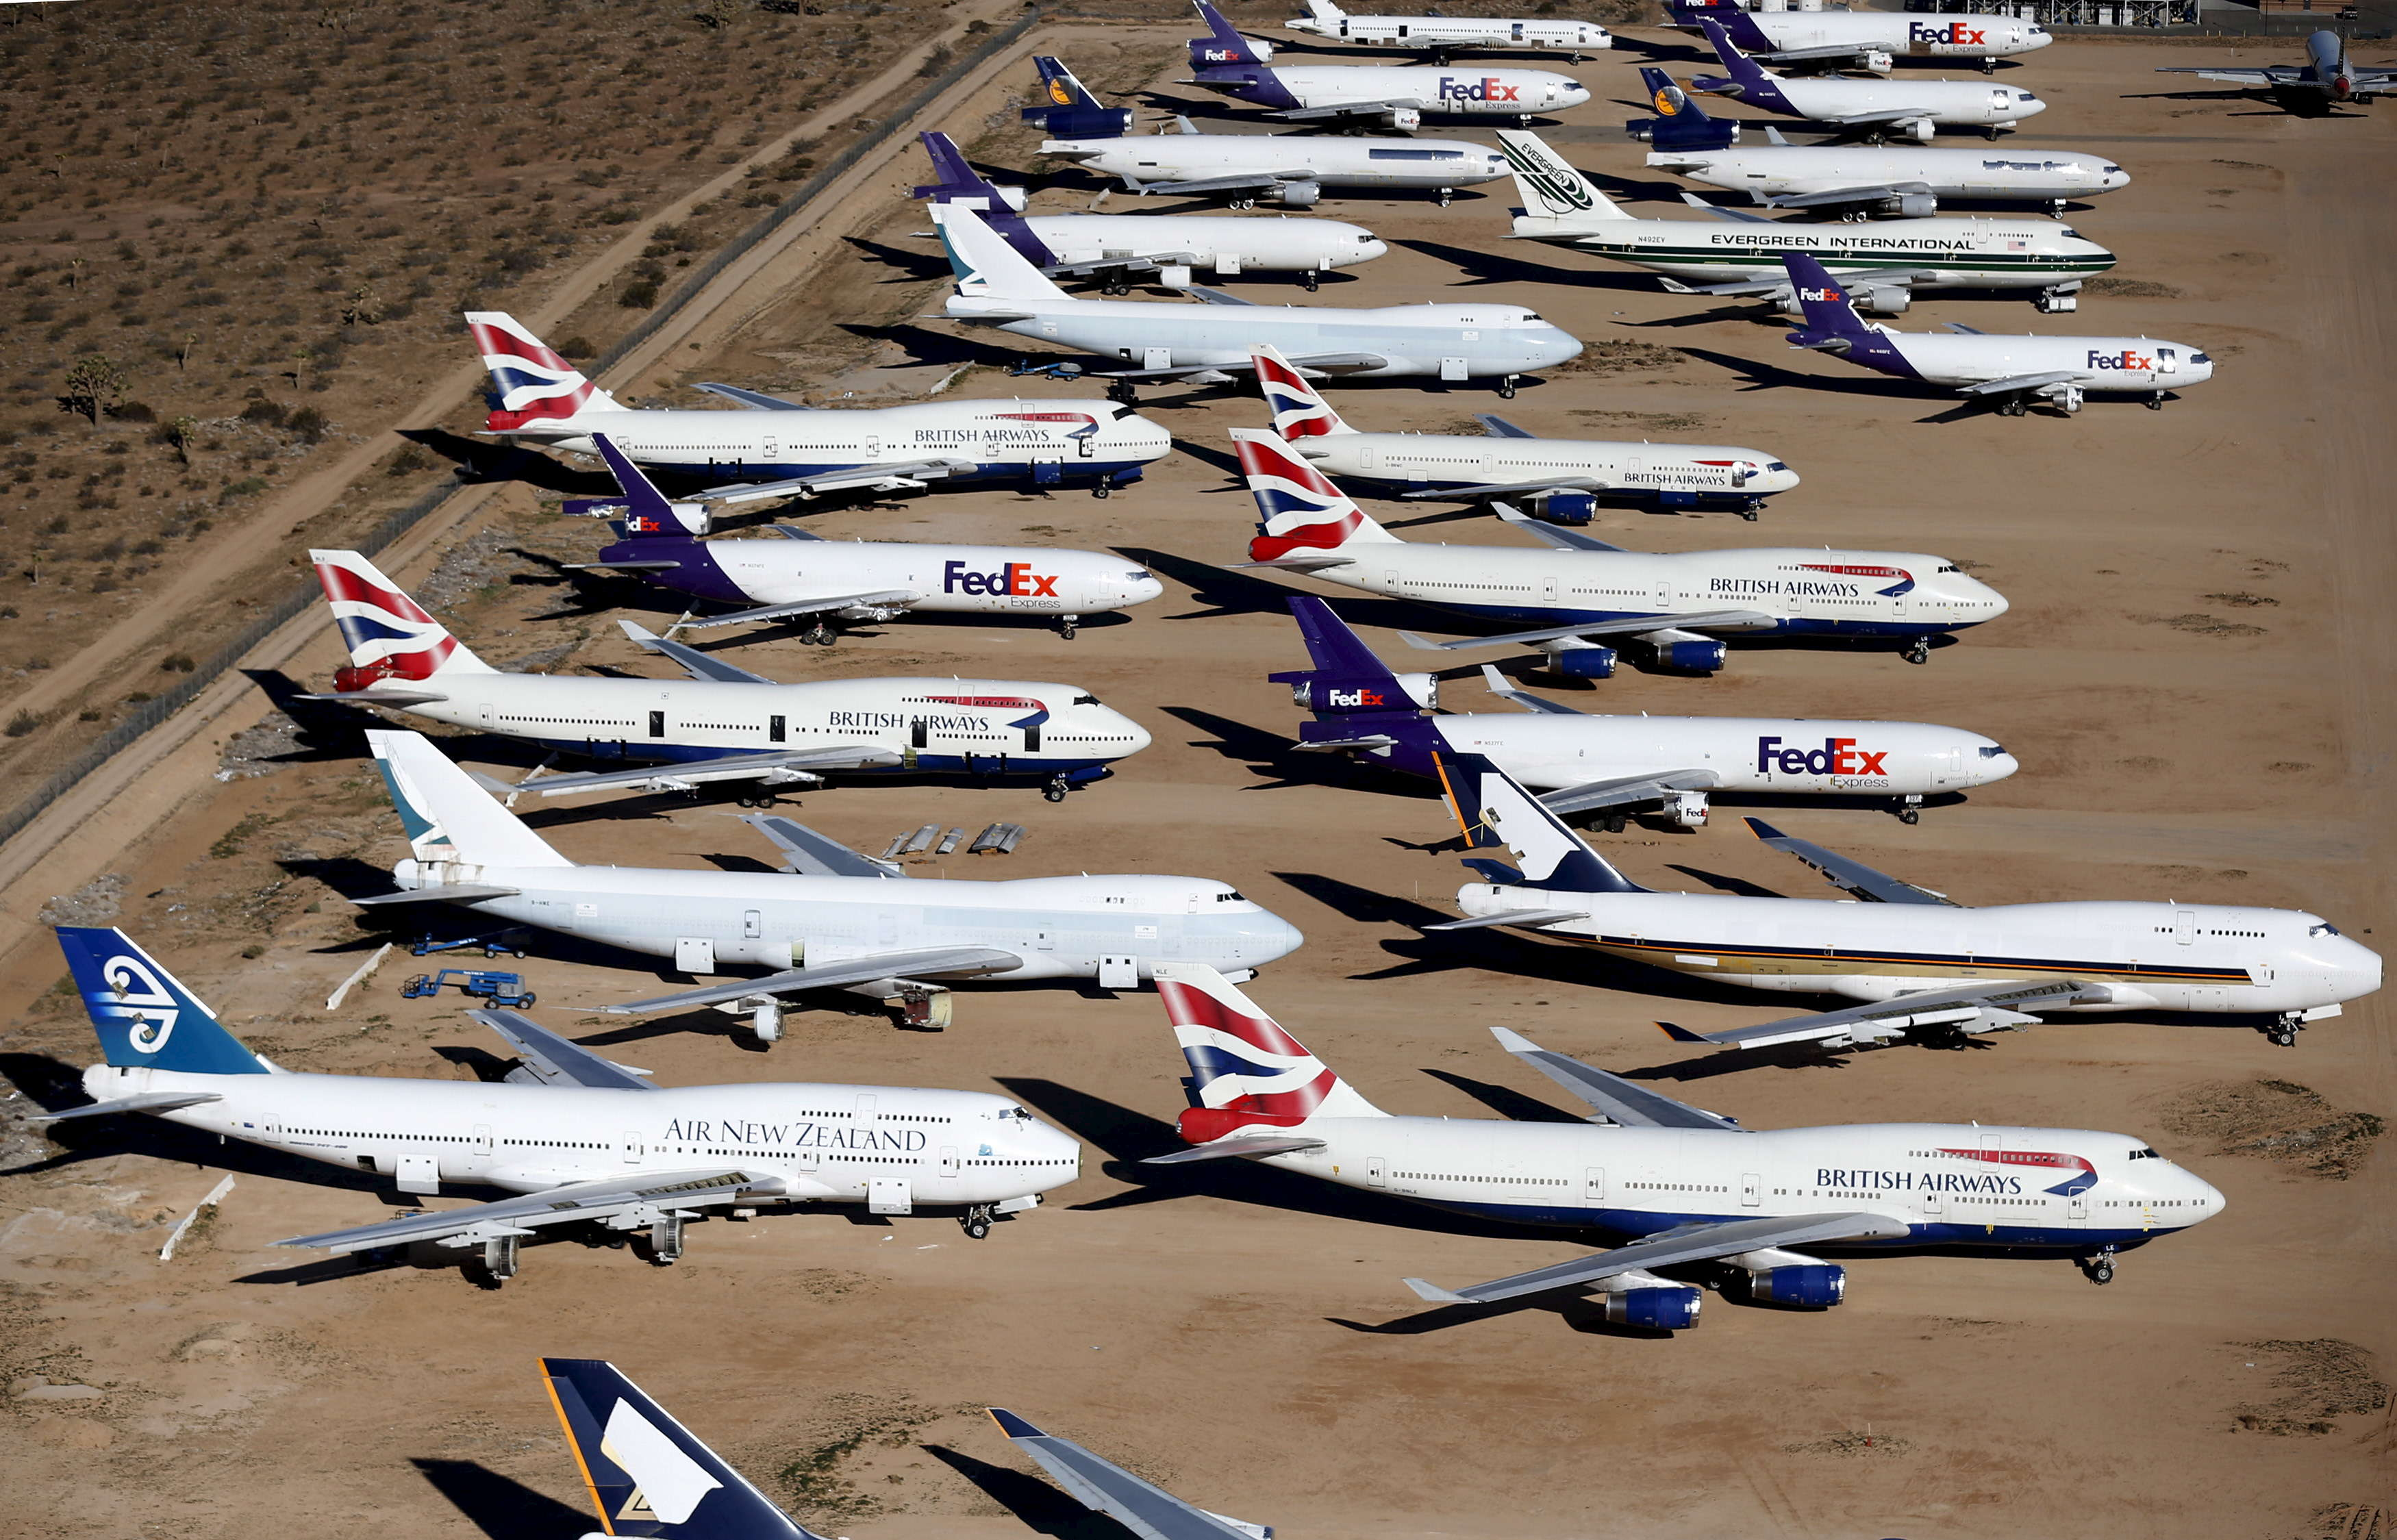 In addition to BA, Singapore Airlines, Air New Zealand, and Cathay Pacific have sent their 747s to Victorville.